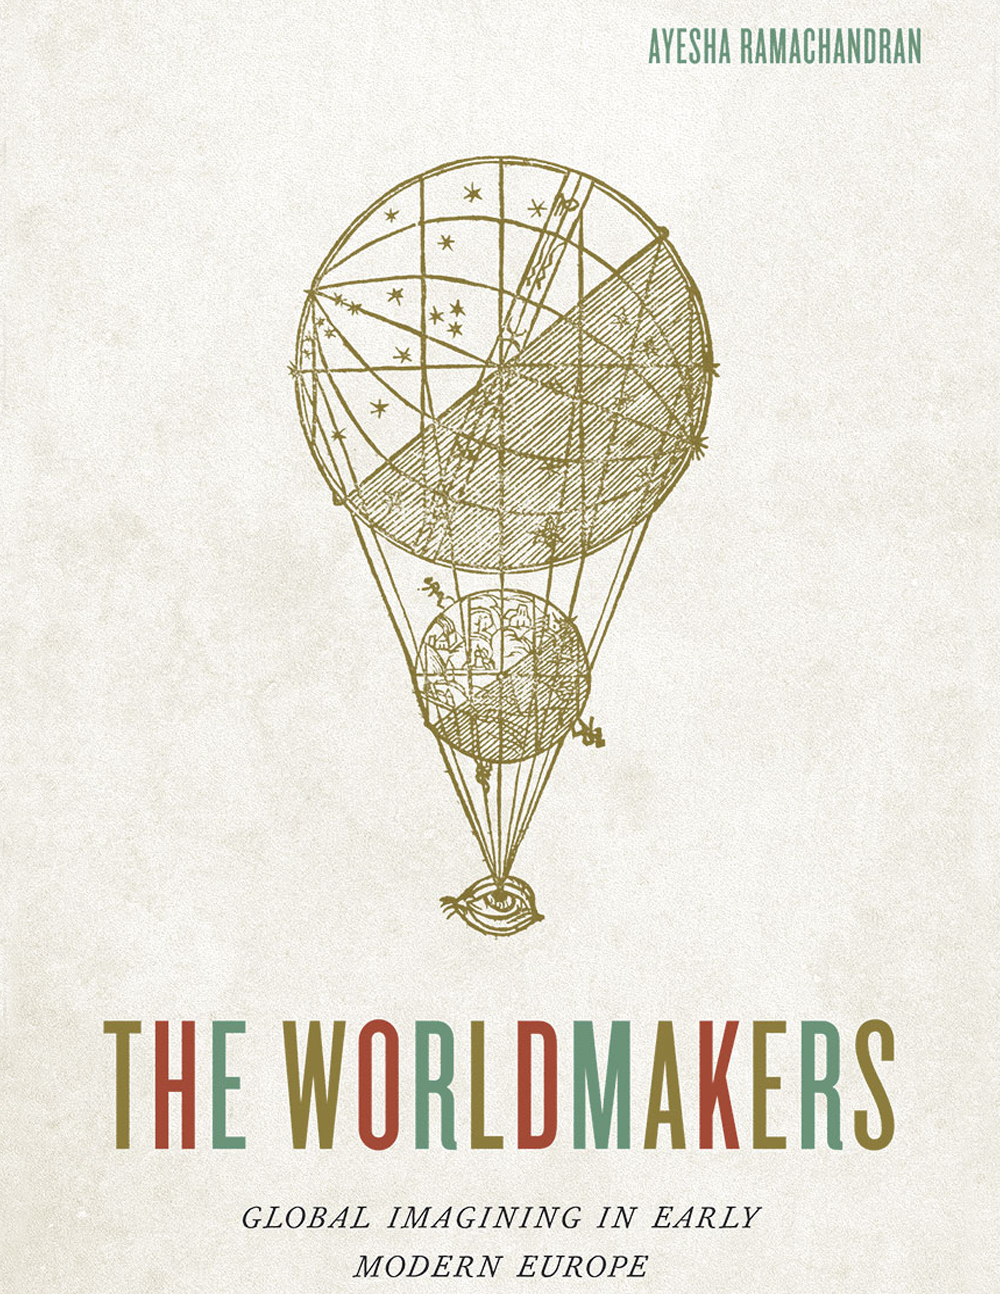 Cover of The Worldmakers: Global Imagining in Early Modern Europe  Courtesy of University of Chicago Press  Appears:  About ,  Writing ,  Worldmakers